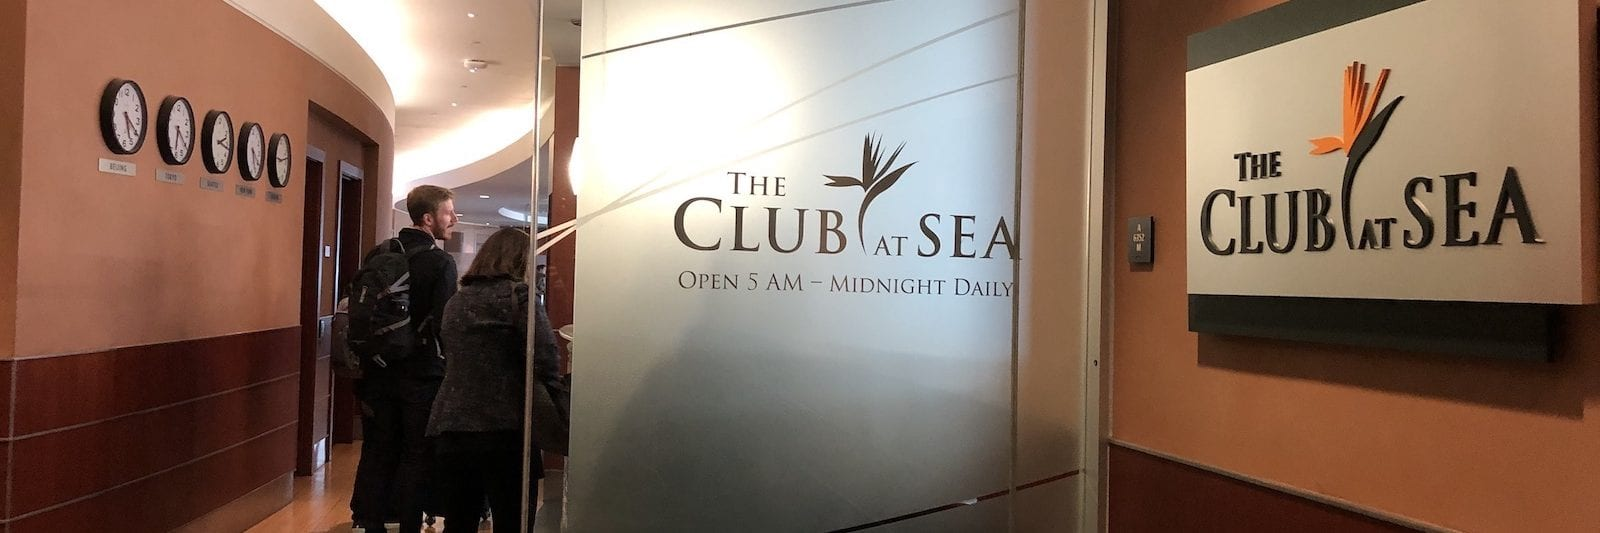 Entrance to The Clud Sea Lounge, Seattle Airport